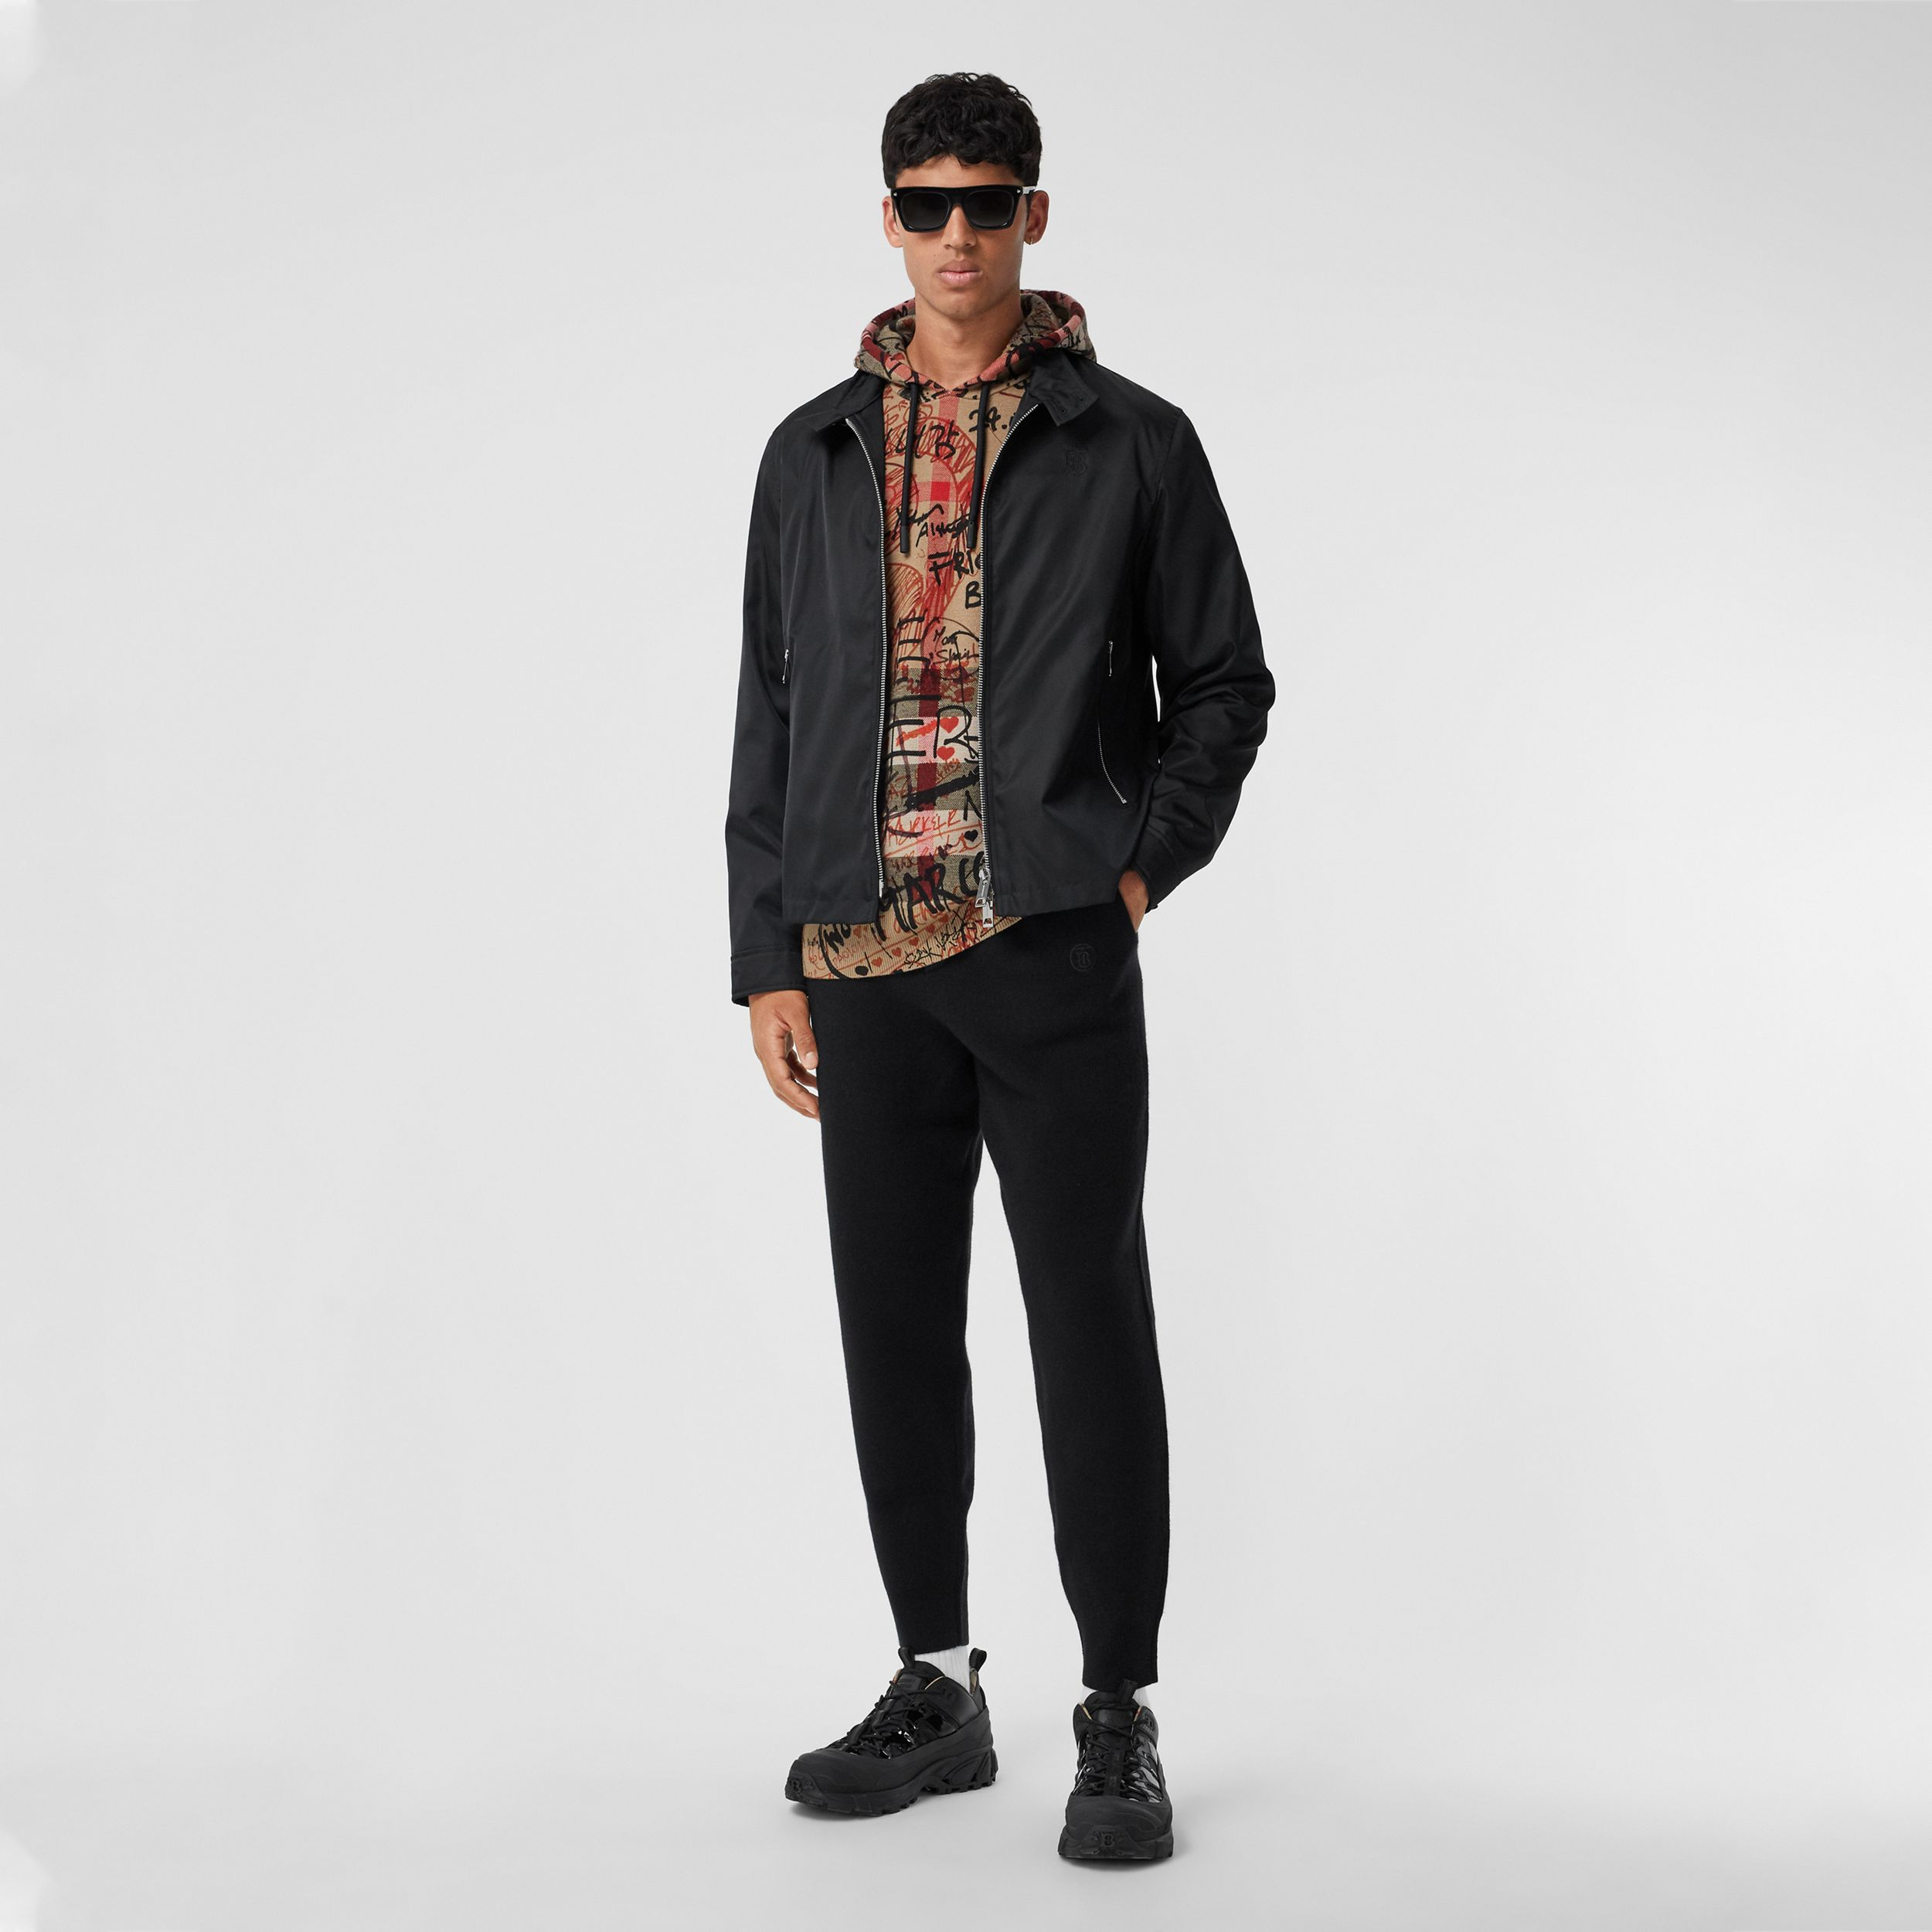 Monogram Motif ECONYL® Jacket in Black - Men | Burberry Australia - 1